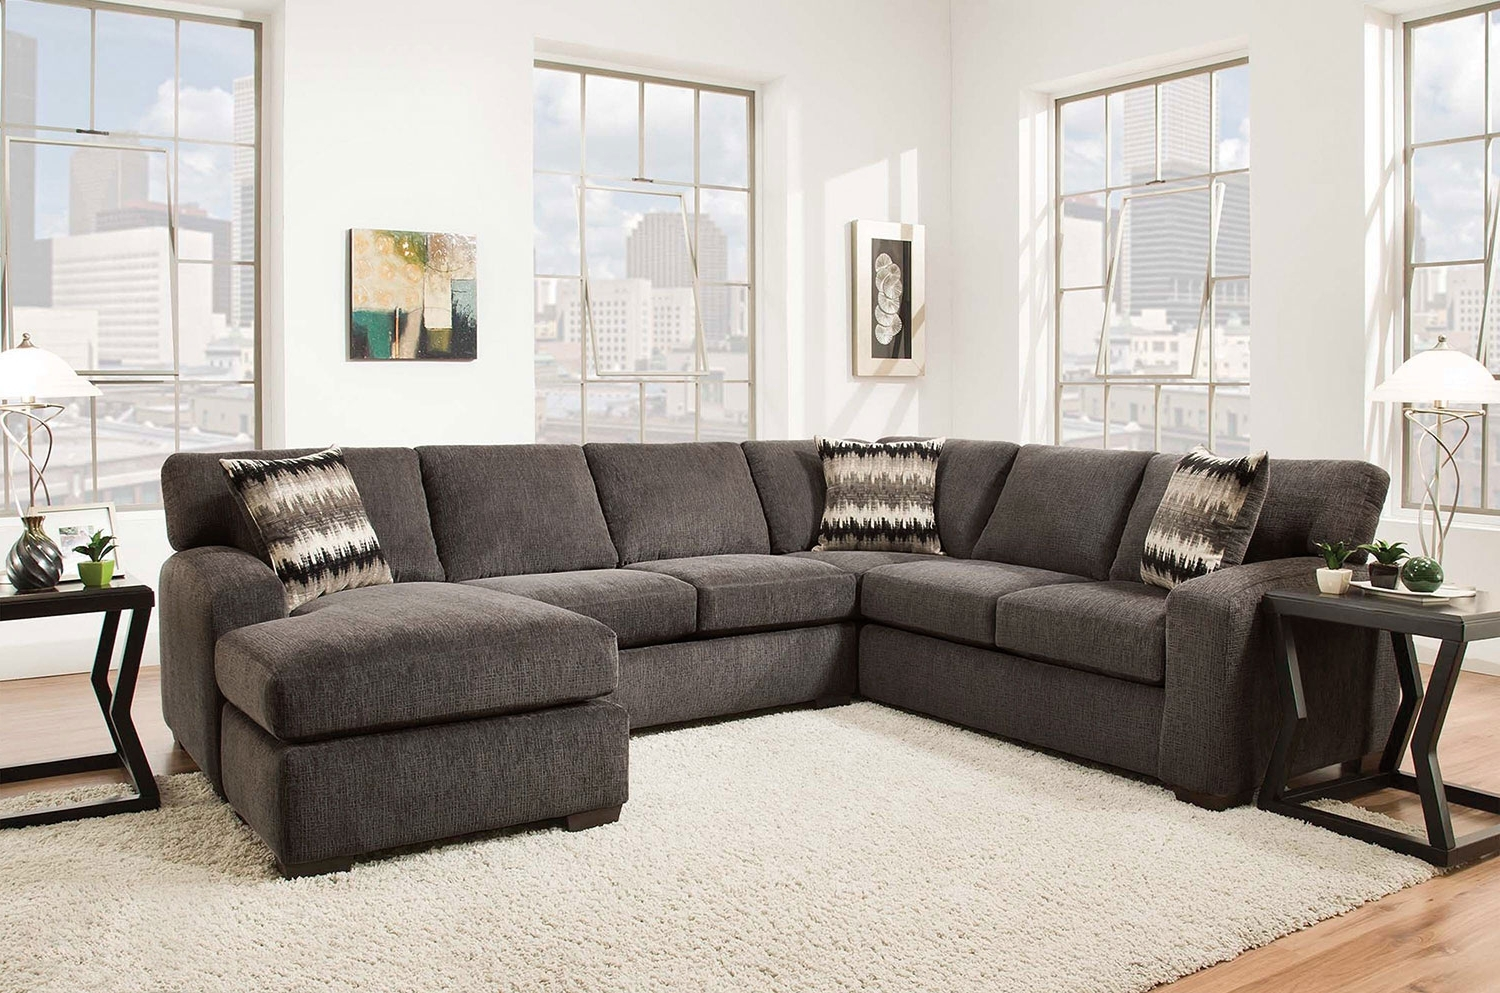 Sectional Sofas Under 600 Pertaining To Latest Fenella 2 Piece Right Facing Sectional – Smoke (View 13 of 20)